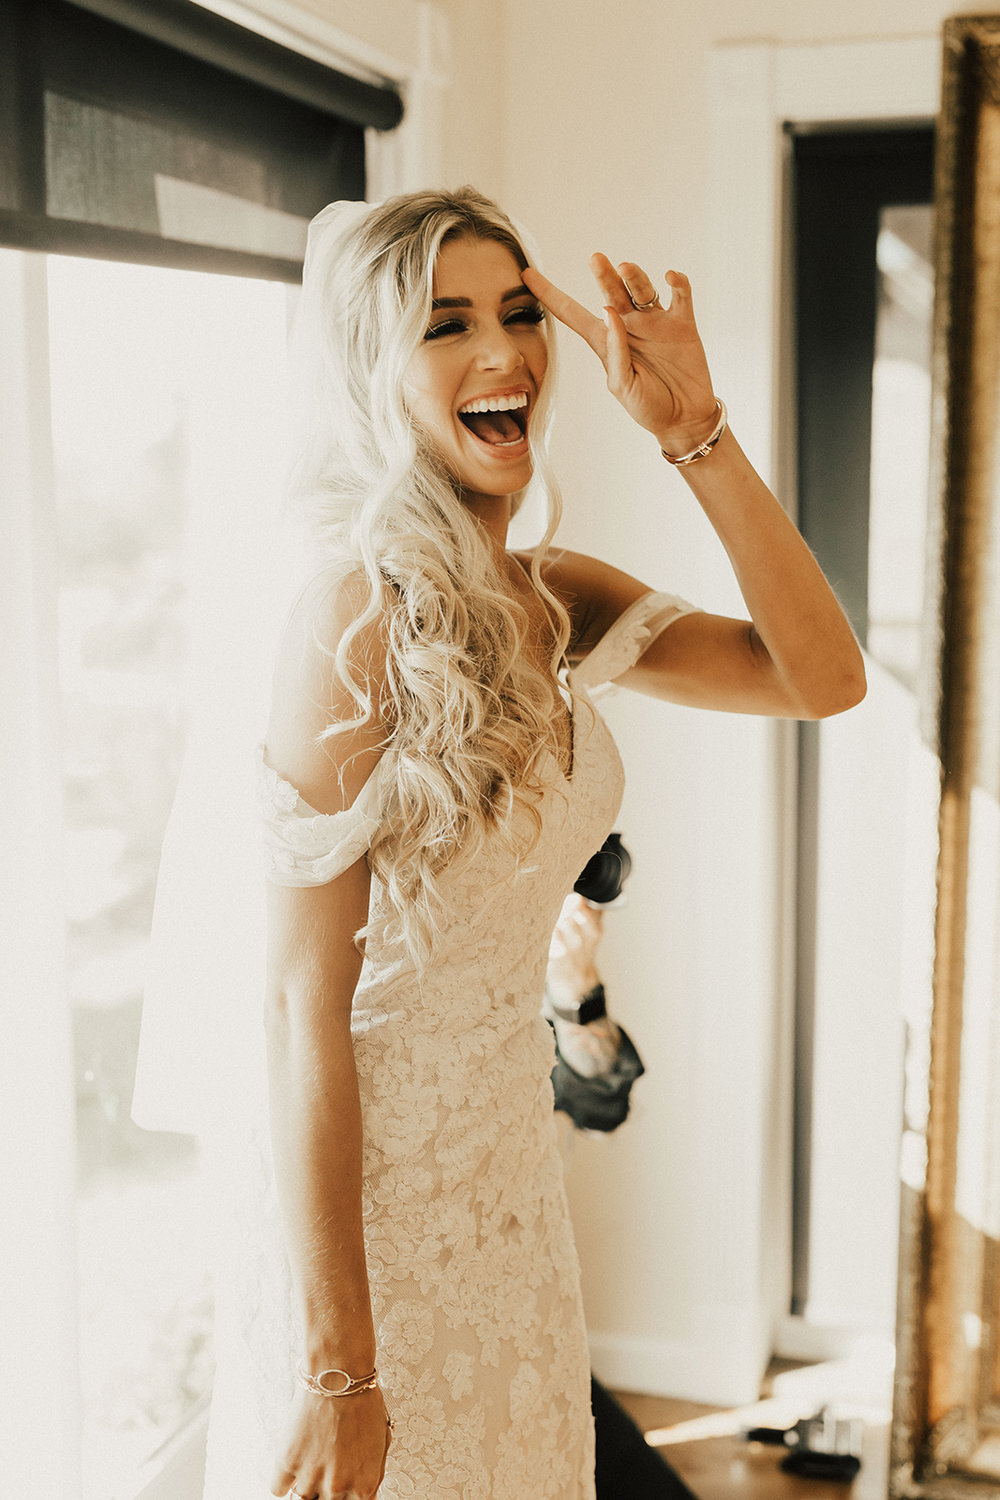 allie-tyler-vintage-villas-austin-texas-wedding-photographer-1126.jpg